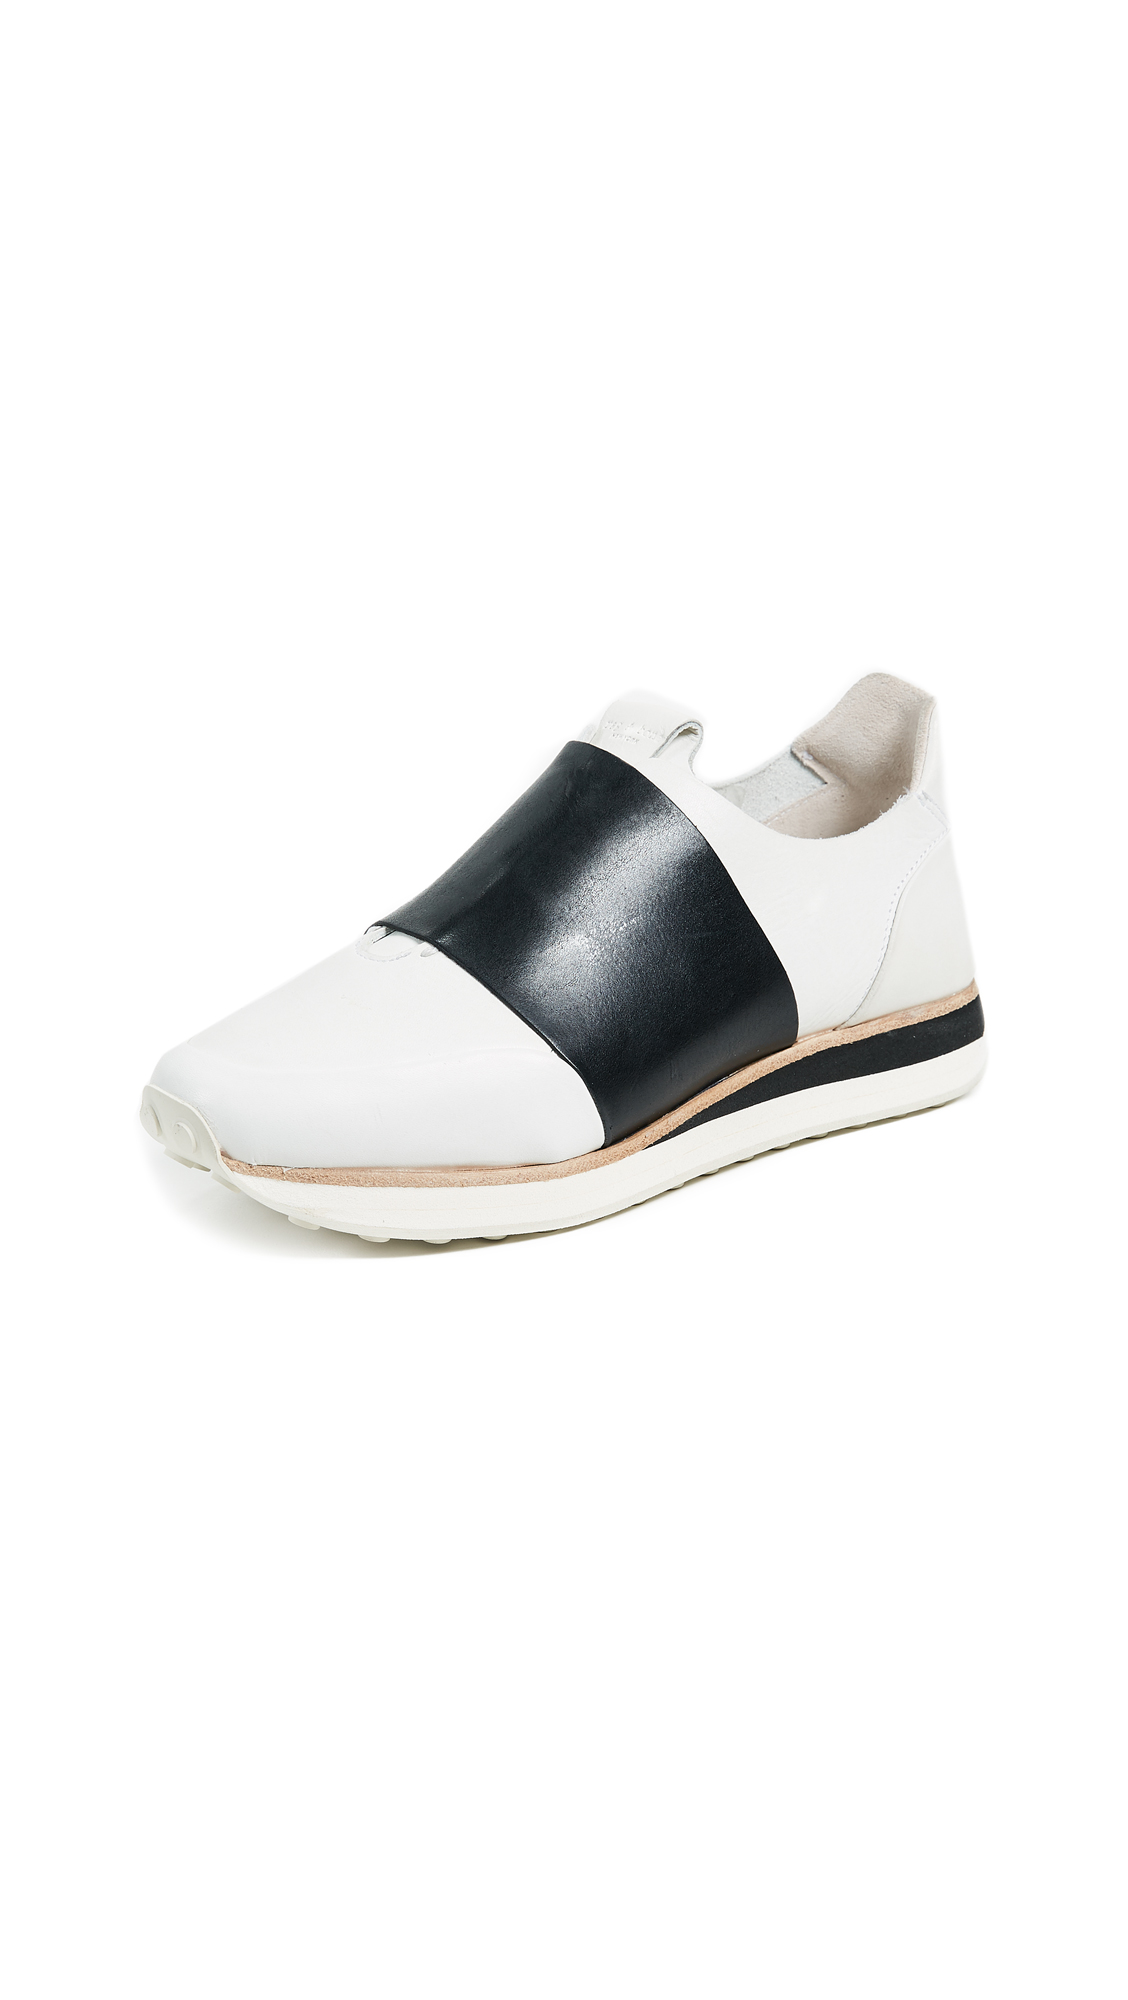 Rag & Bone Dylan Elastic Runners - White/Black